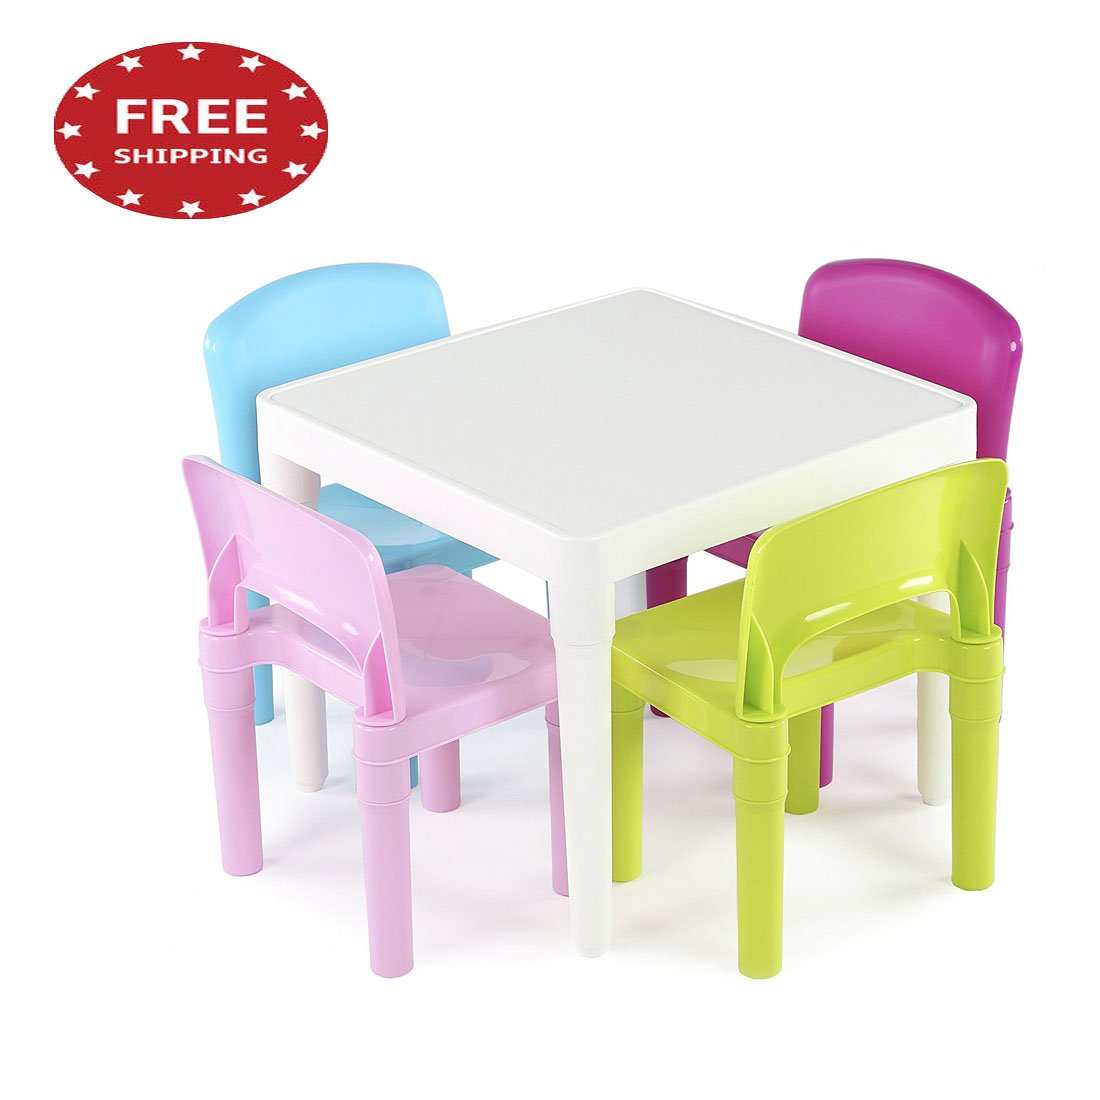 jnwd Kids Work Table Set Small Child Plastic 4 Chairs Toddler Activity Games Hobbies Station in Pretty Colors & e-Book by jn. Widetrade.